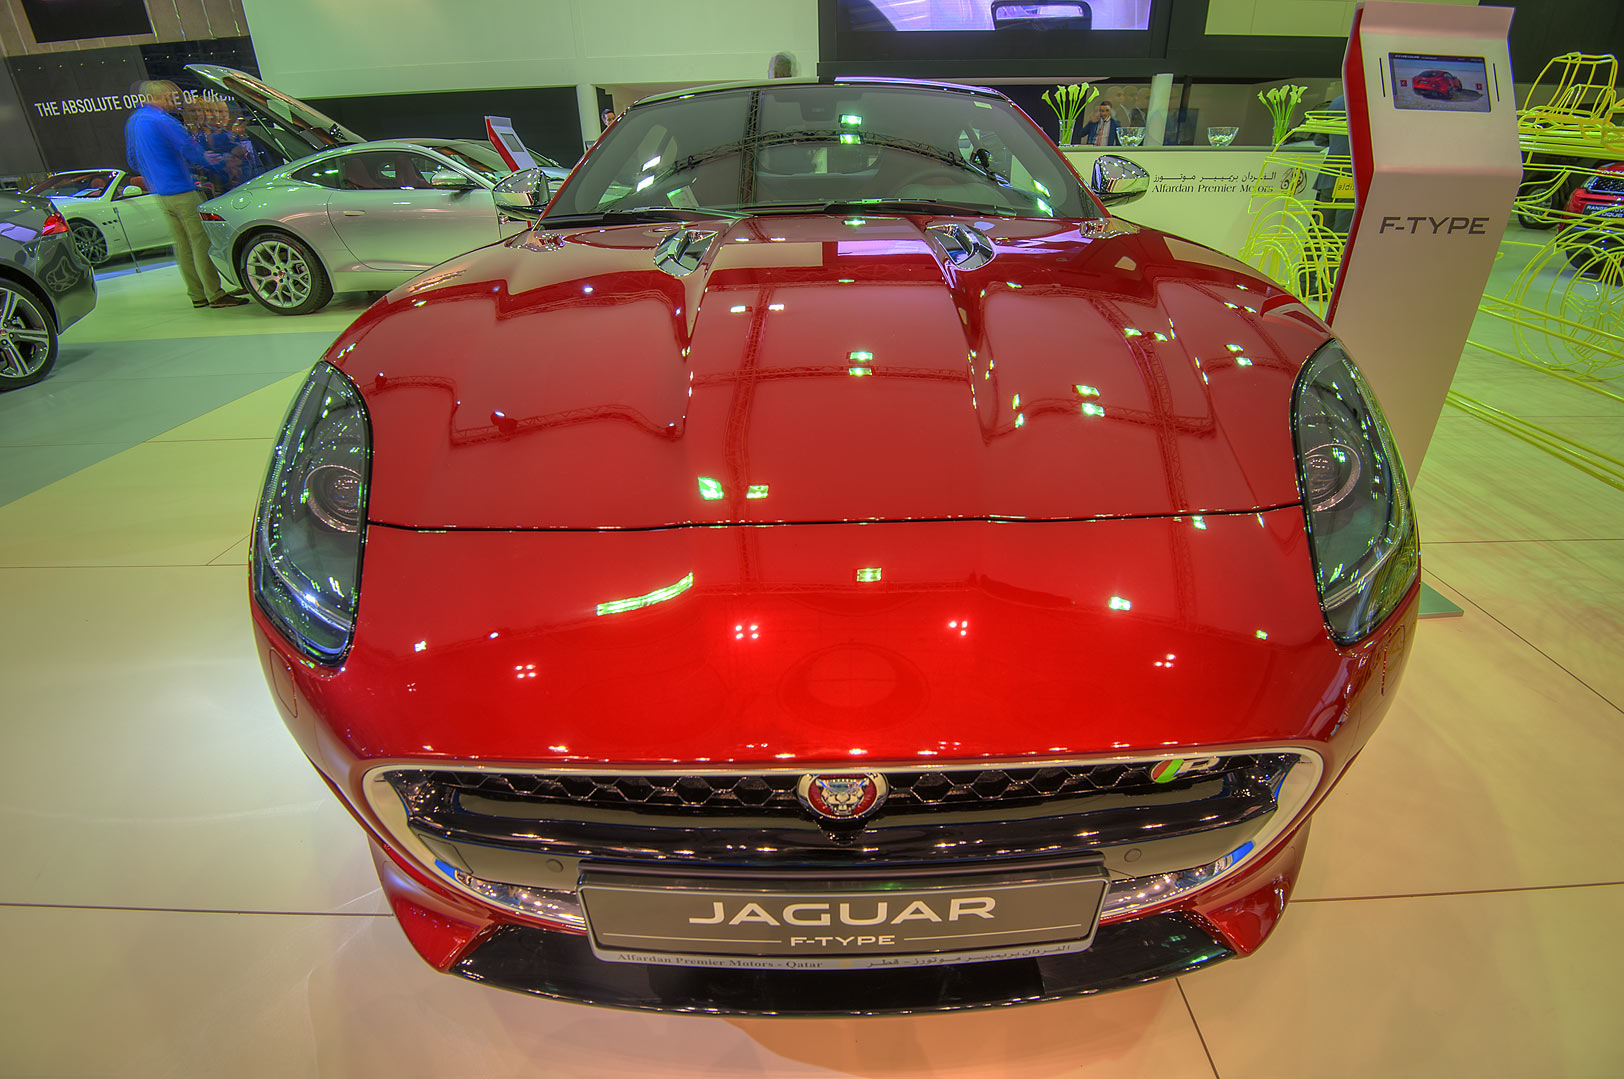 Red Jaguar F Type car at a motor show in...near City Center mall. Doha, Qatar